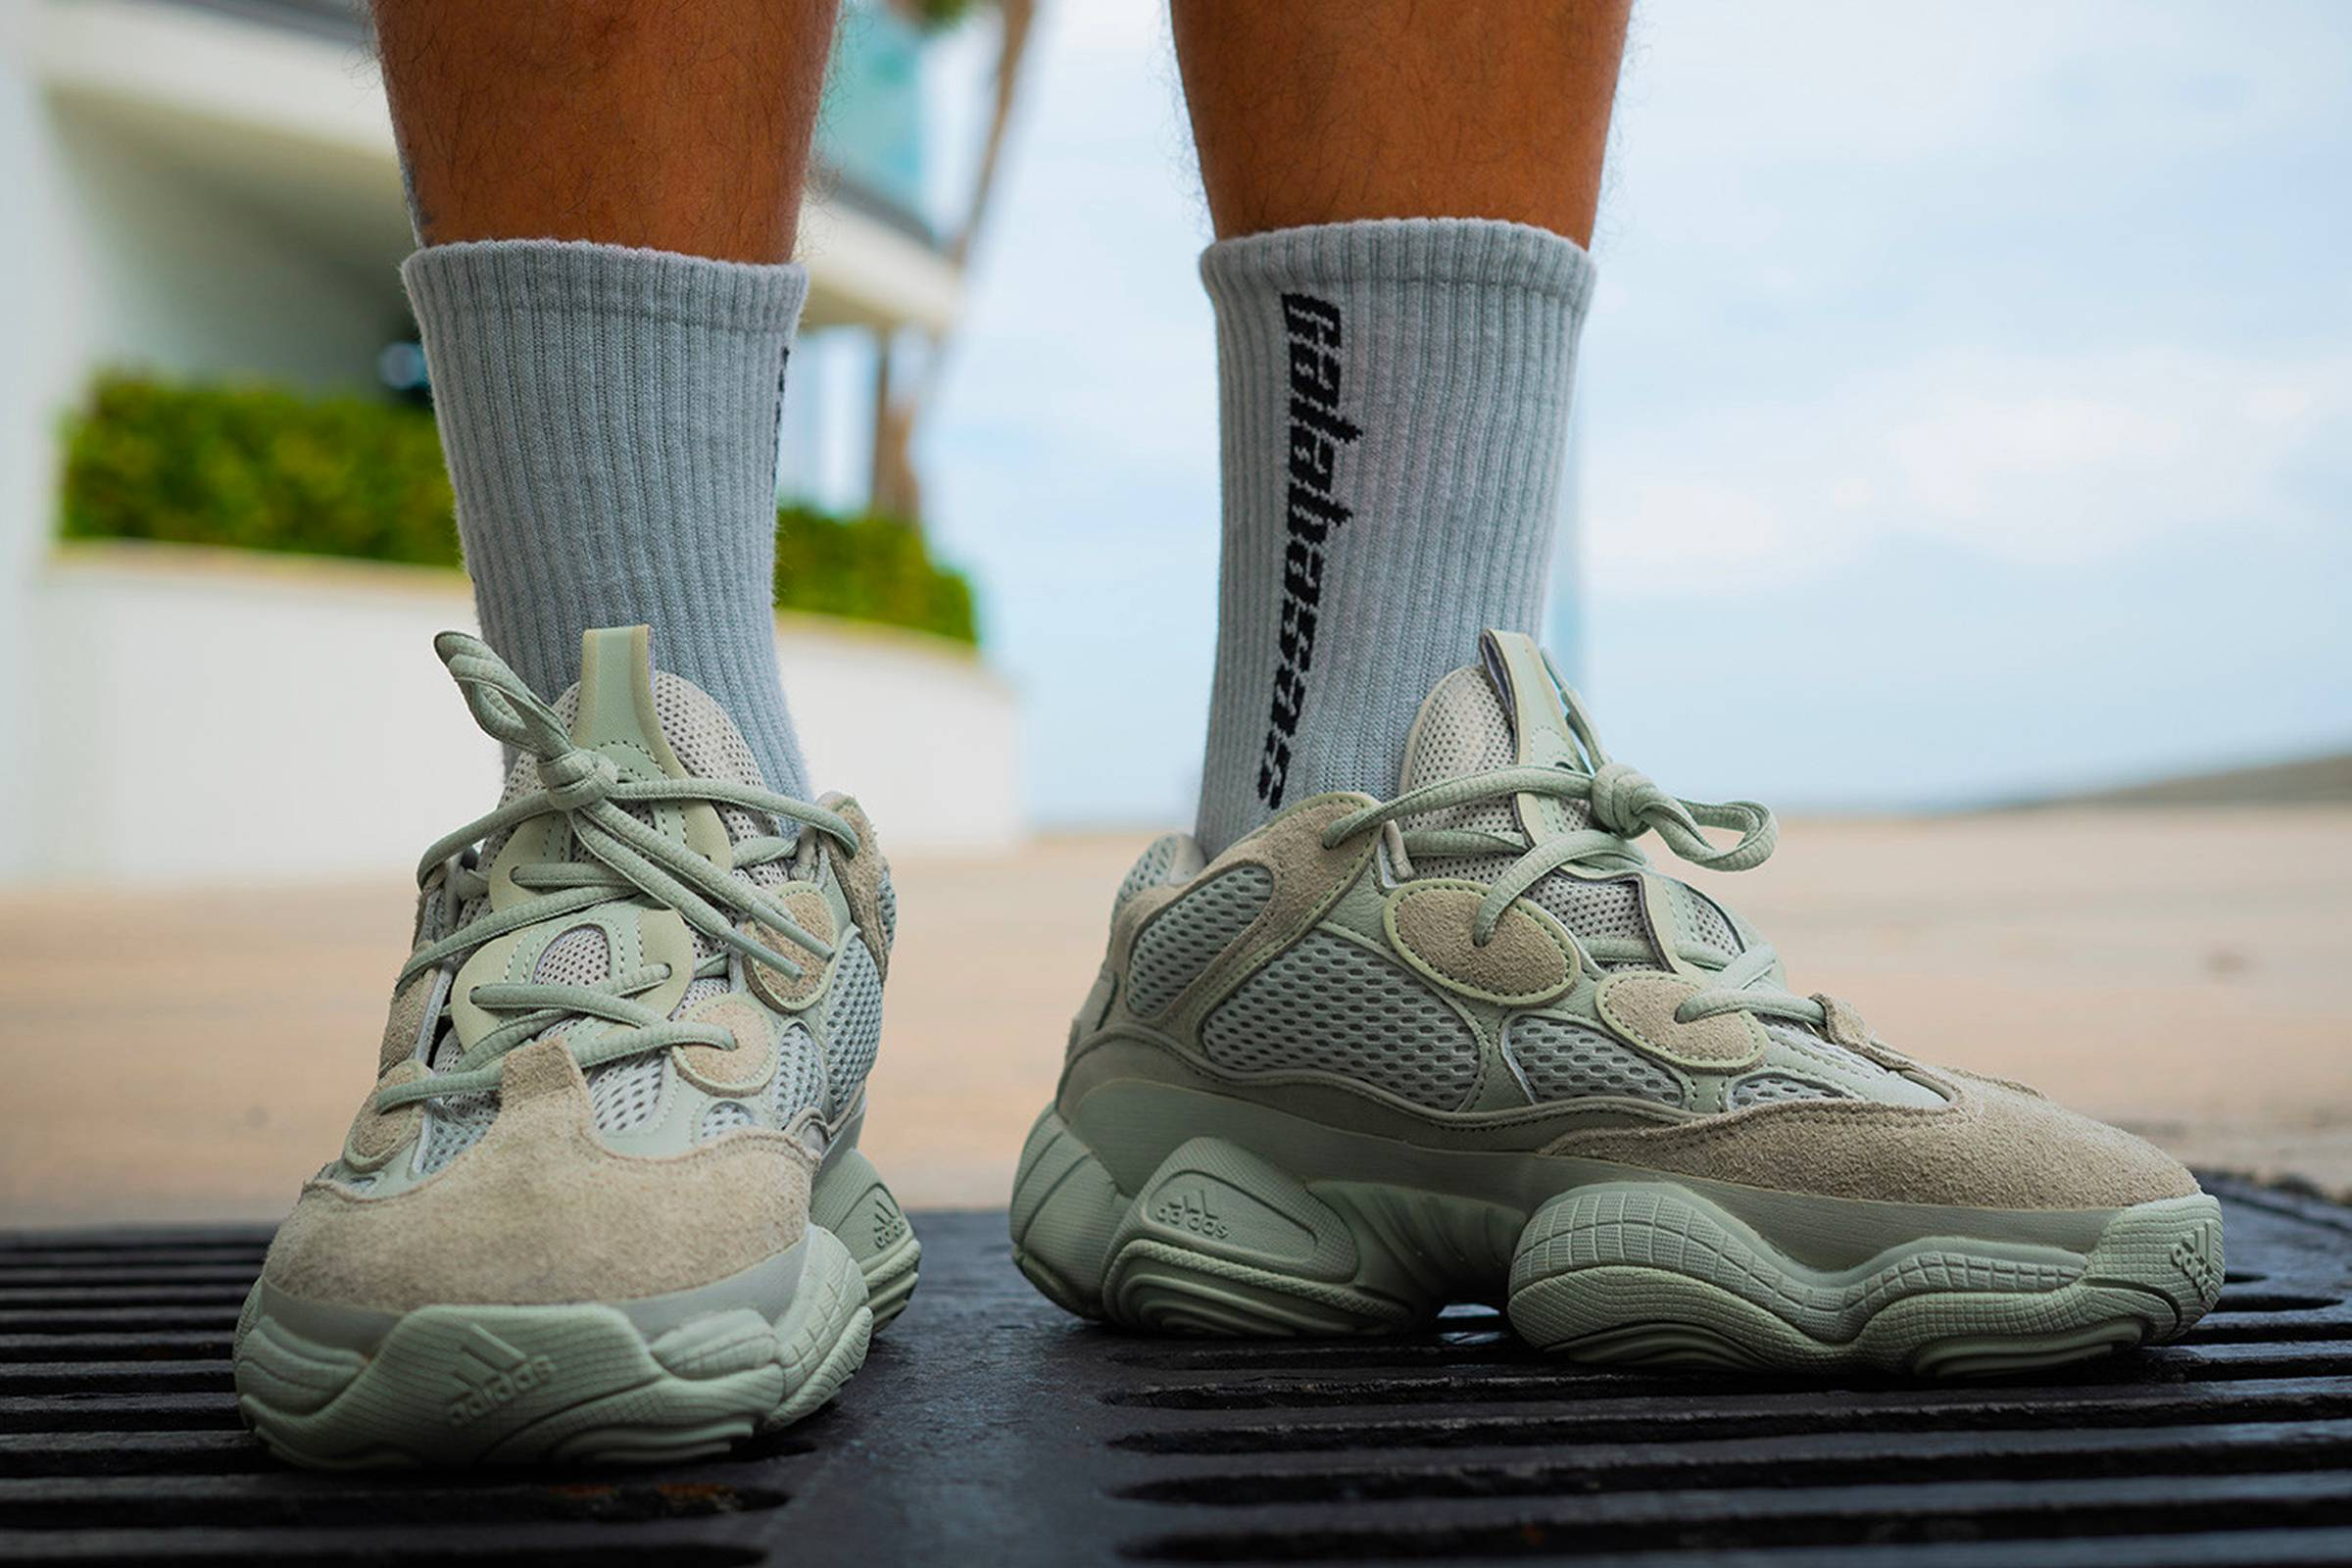 reputable site d8a54 5cf94 The Yeezy 500 Salt Drops This Friday | Grailed